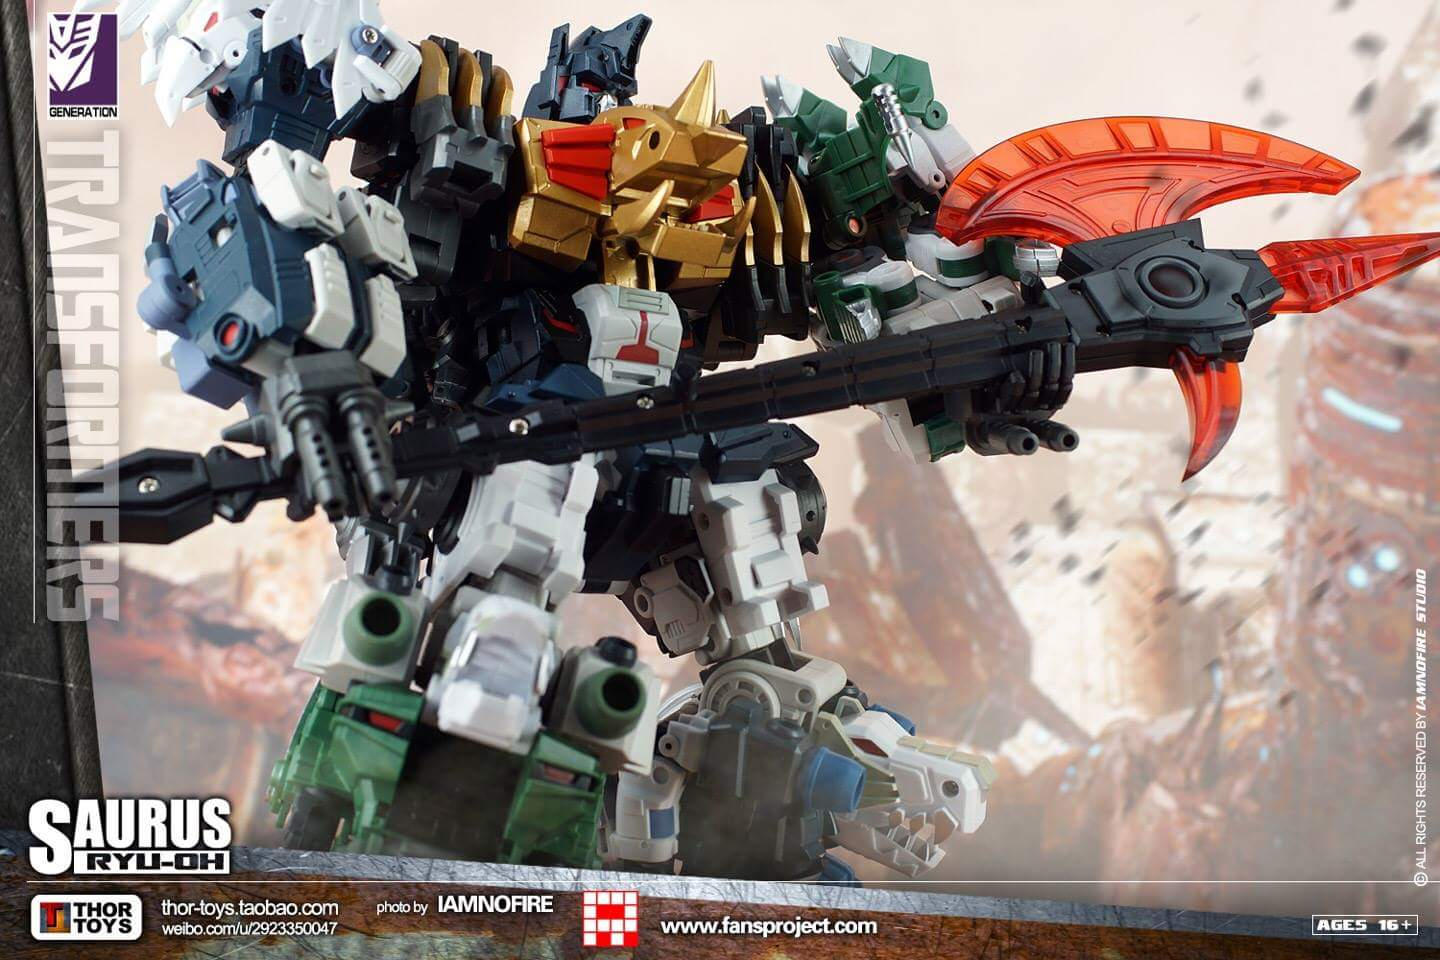 [FansProject] Produit Tiers - Jouet Saurus Ryu-oh aka Dinoking (Victory) | Monstructor (USA) - Page 2 V6Ok2JHS